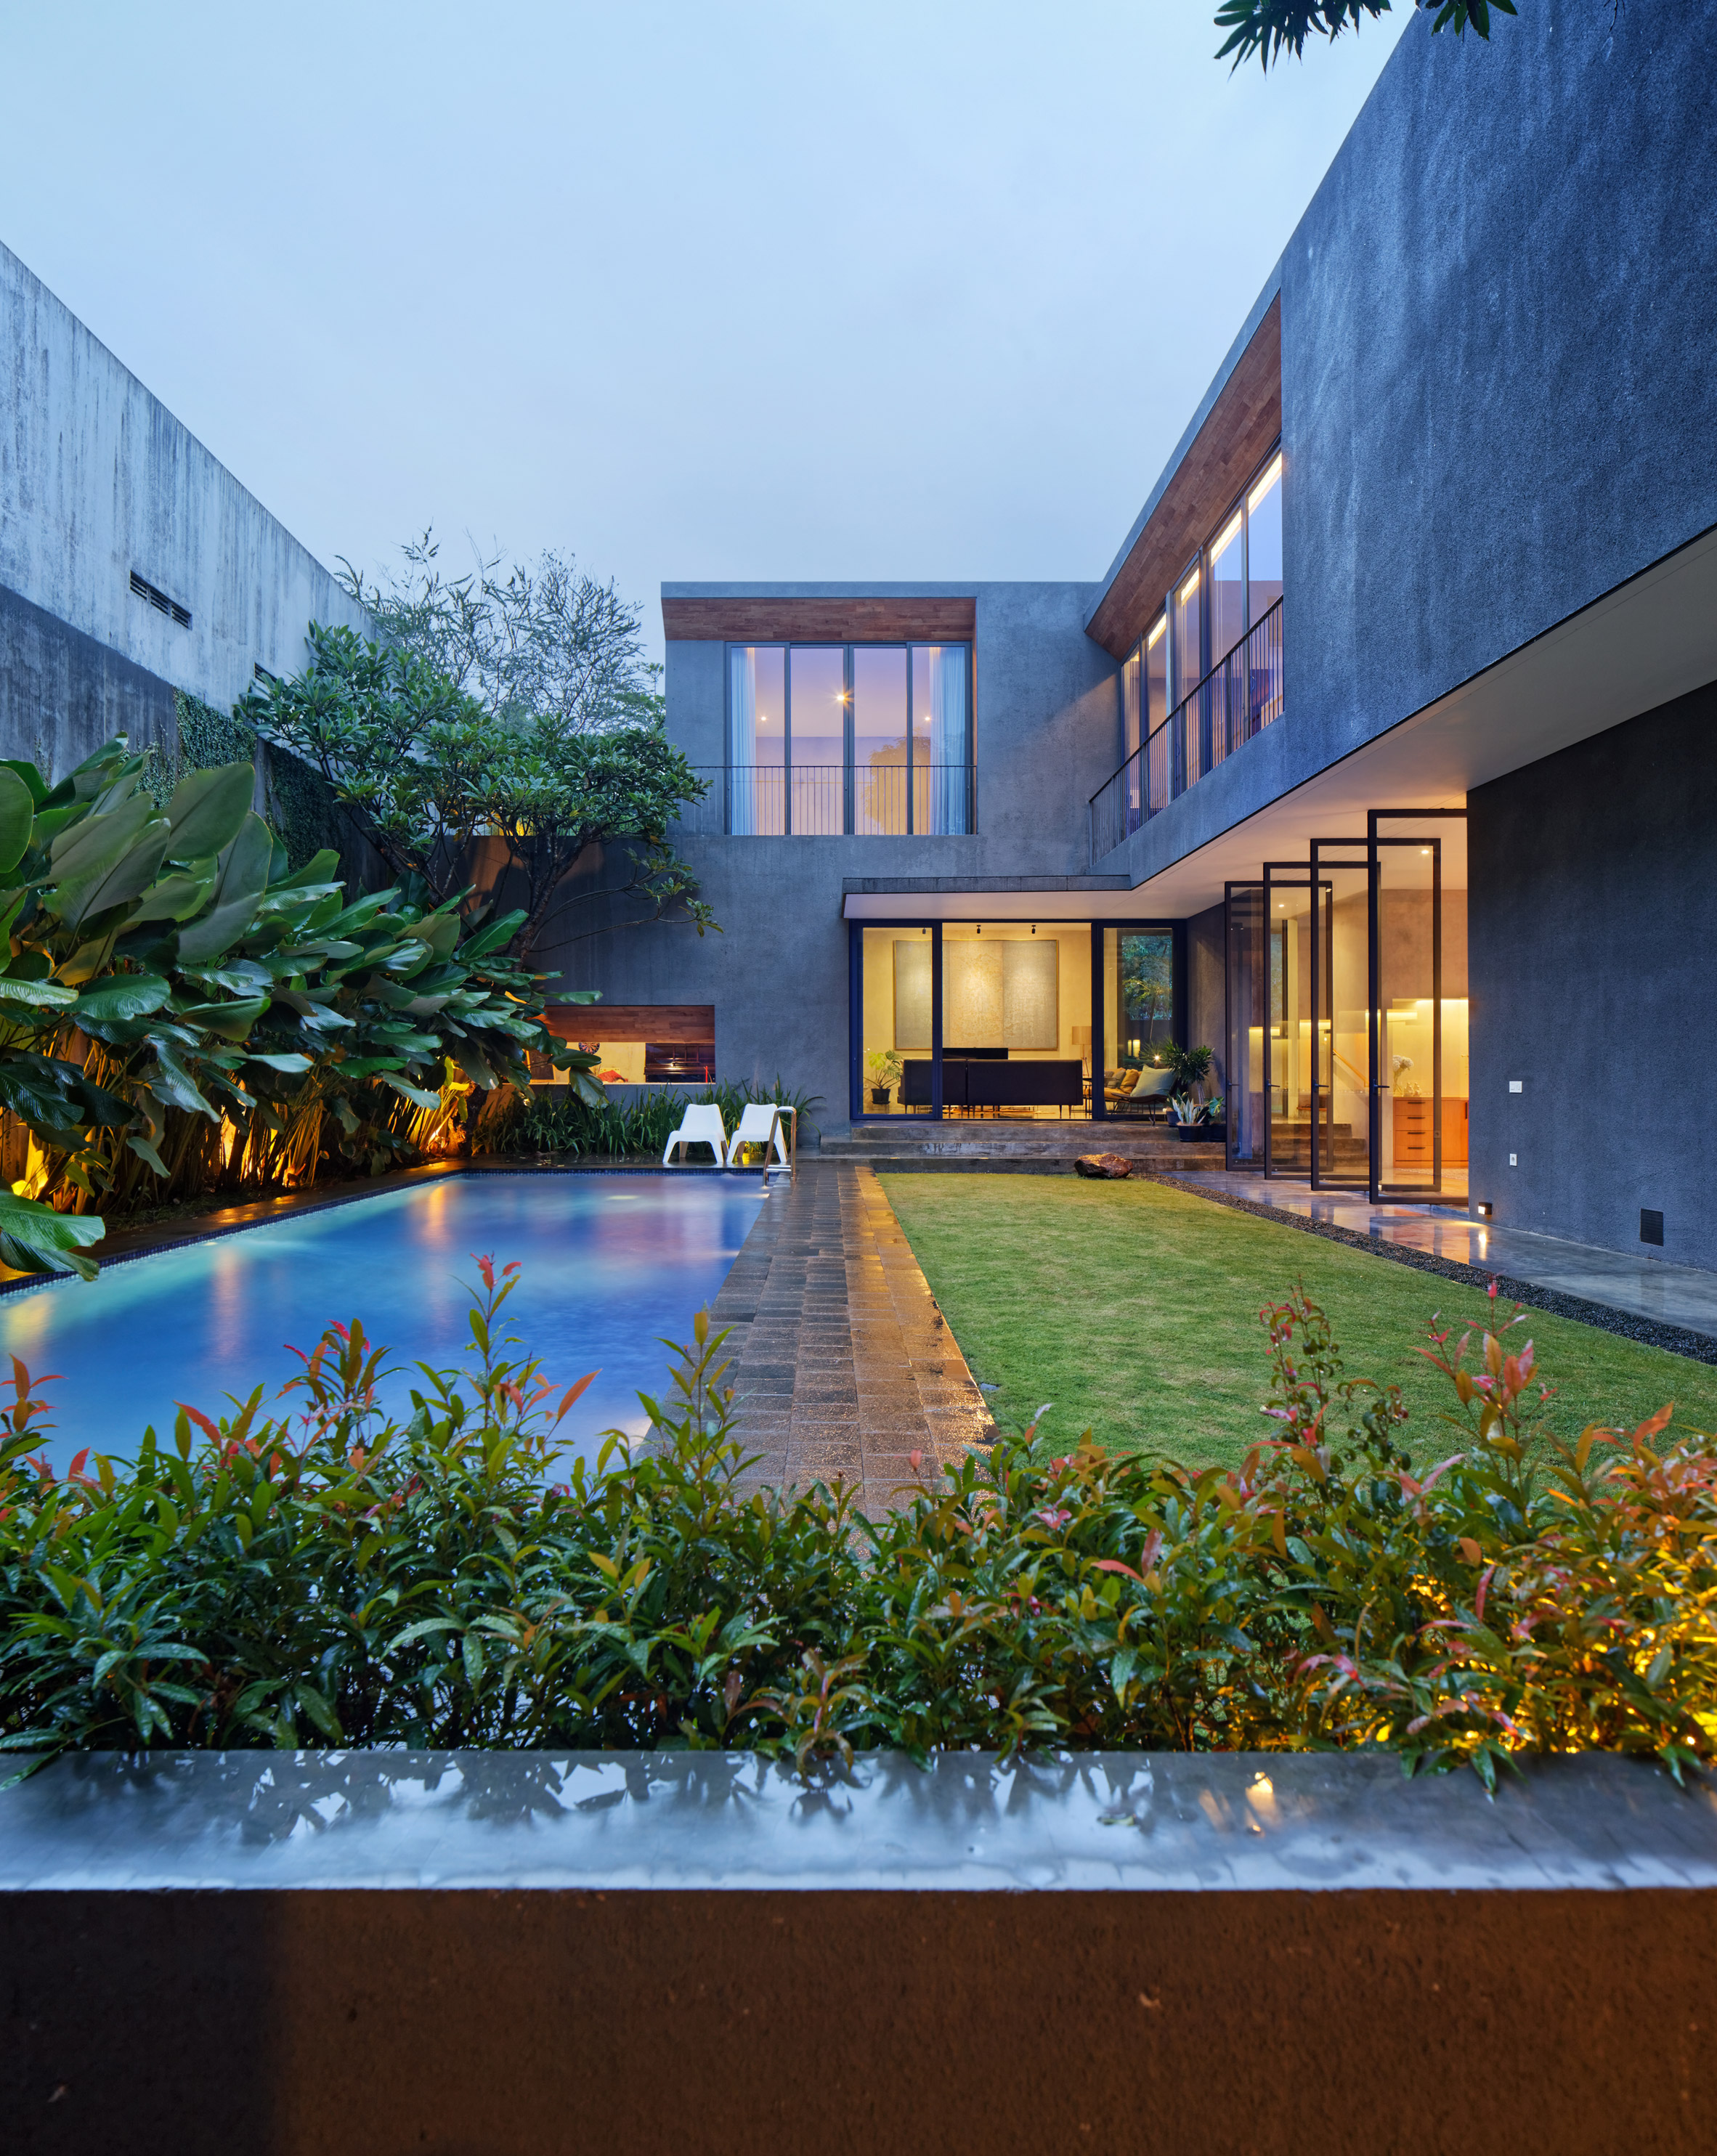 house-inside-outside-tamara-wibowo-architecture-residential-indonesia_dezeen_2364_col_4.jpg